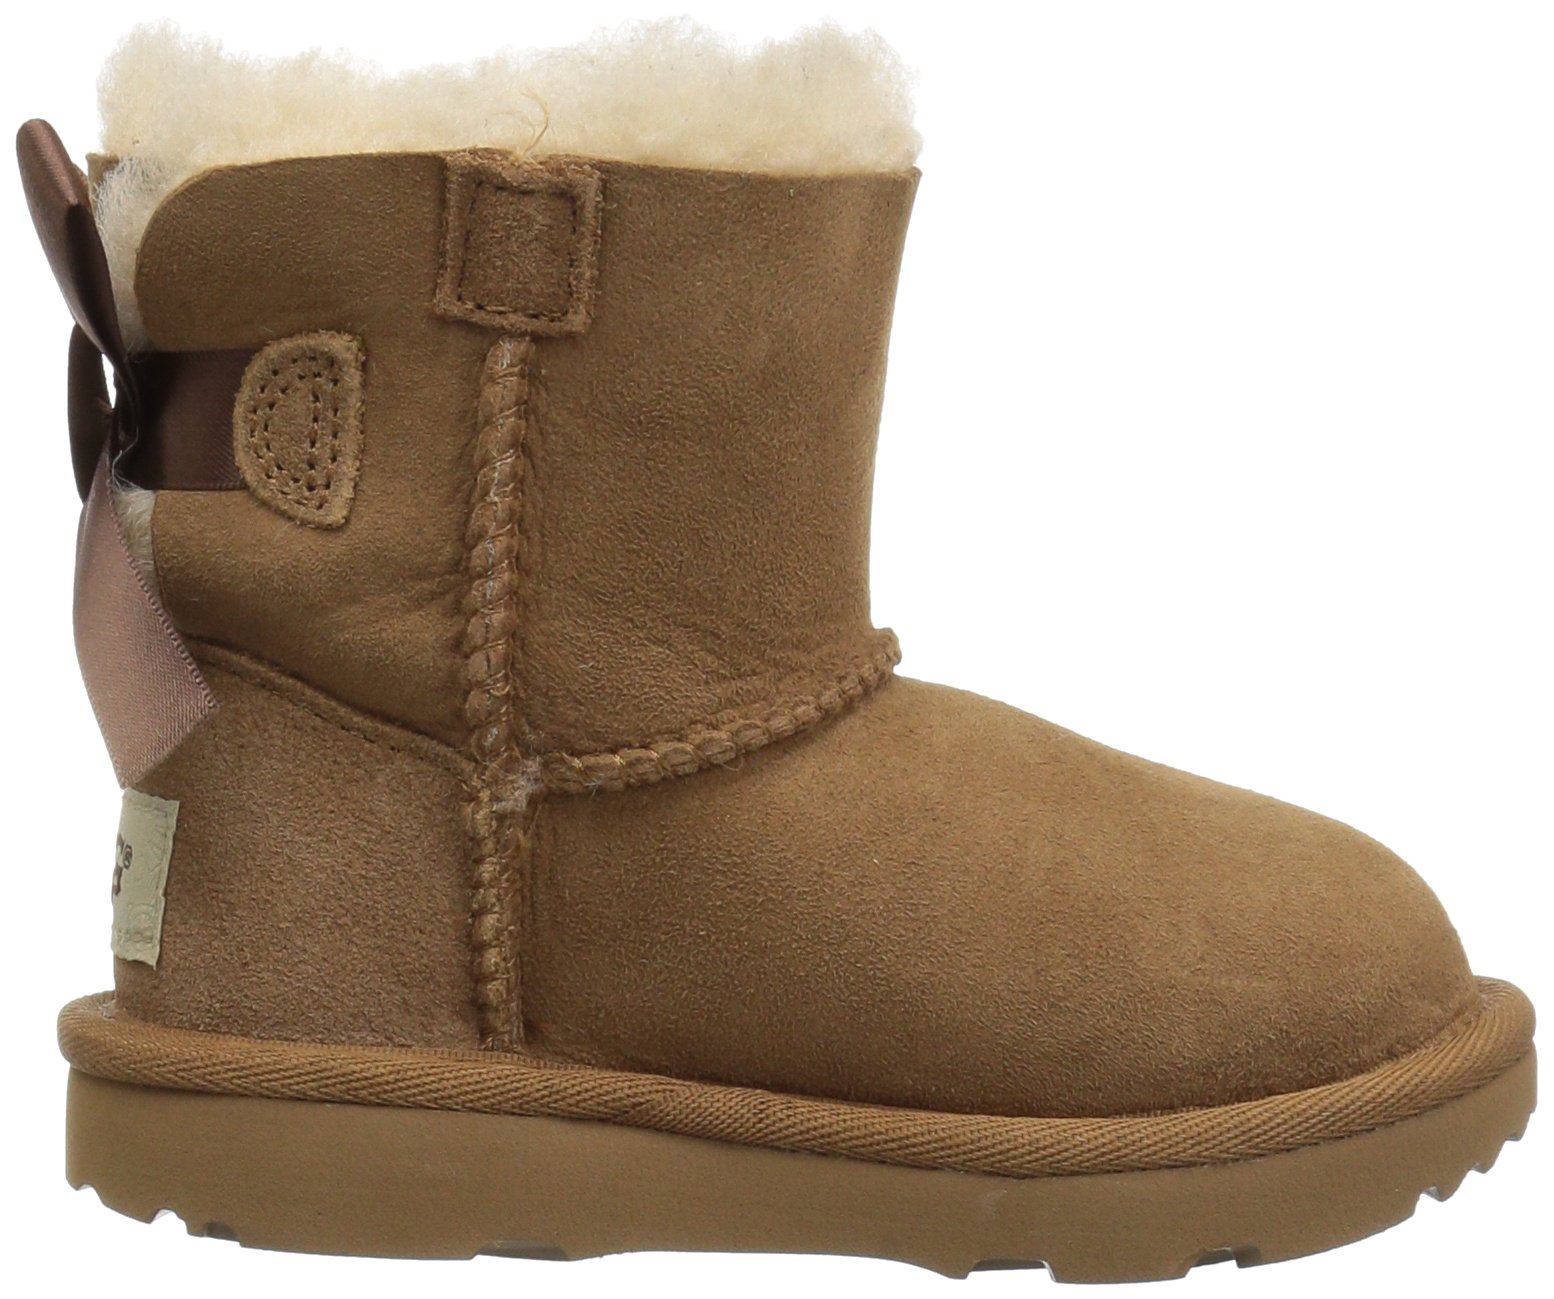 UGG Girls T Mini Bailey Bow II Pull-on Boot, Chestnut, 12 M US Little Kid by UGG (Image #7)